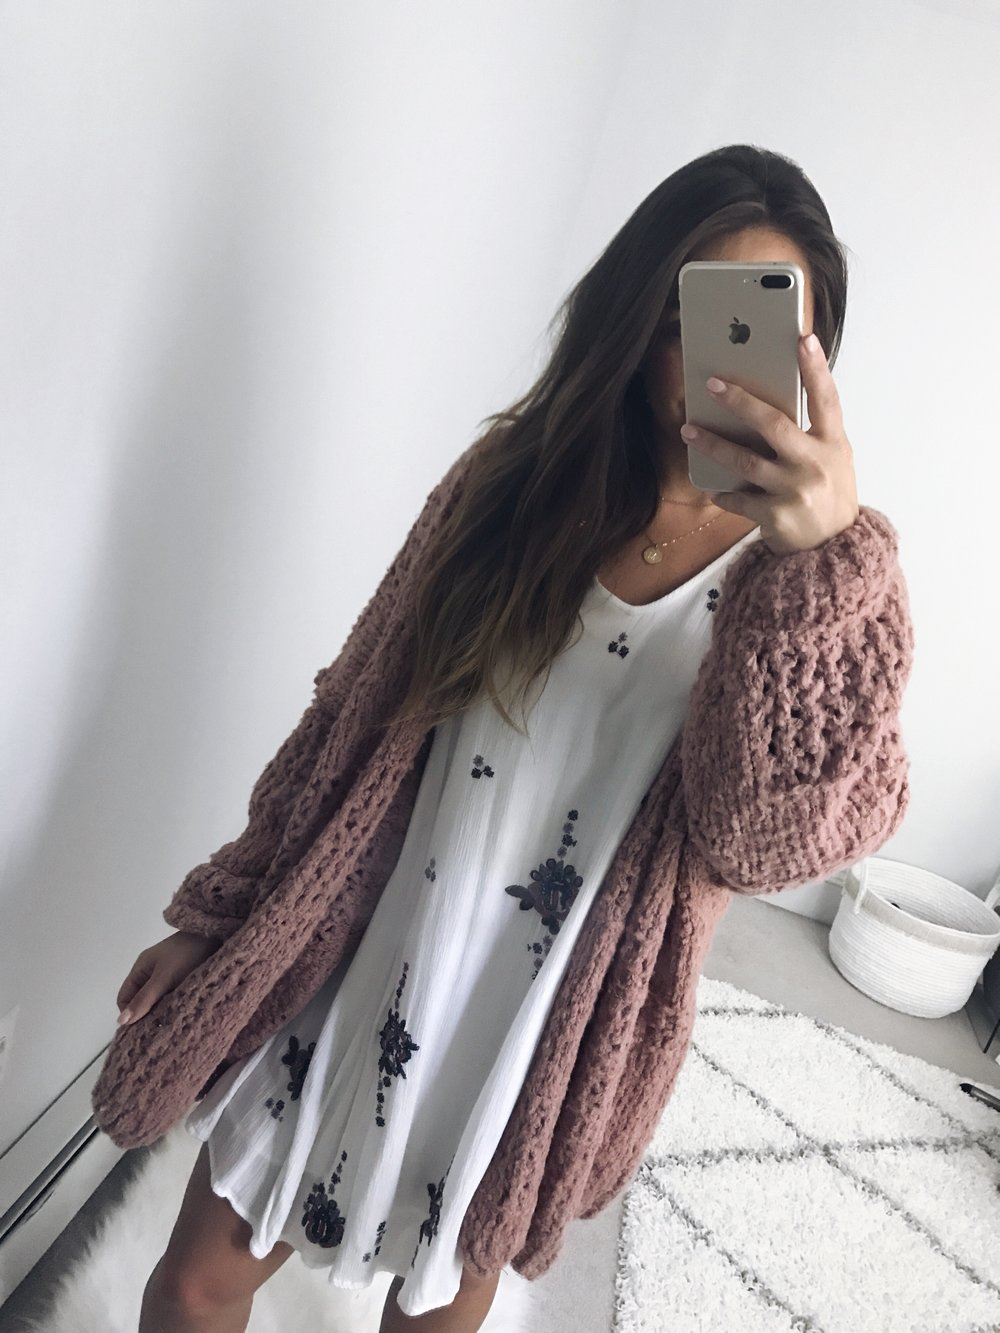 fall transition outfit idea / how to transition a dress into fall / fall outfit idea / fall outfit inspiration / free people dress & cardigan